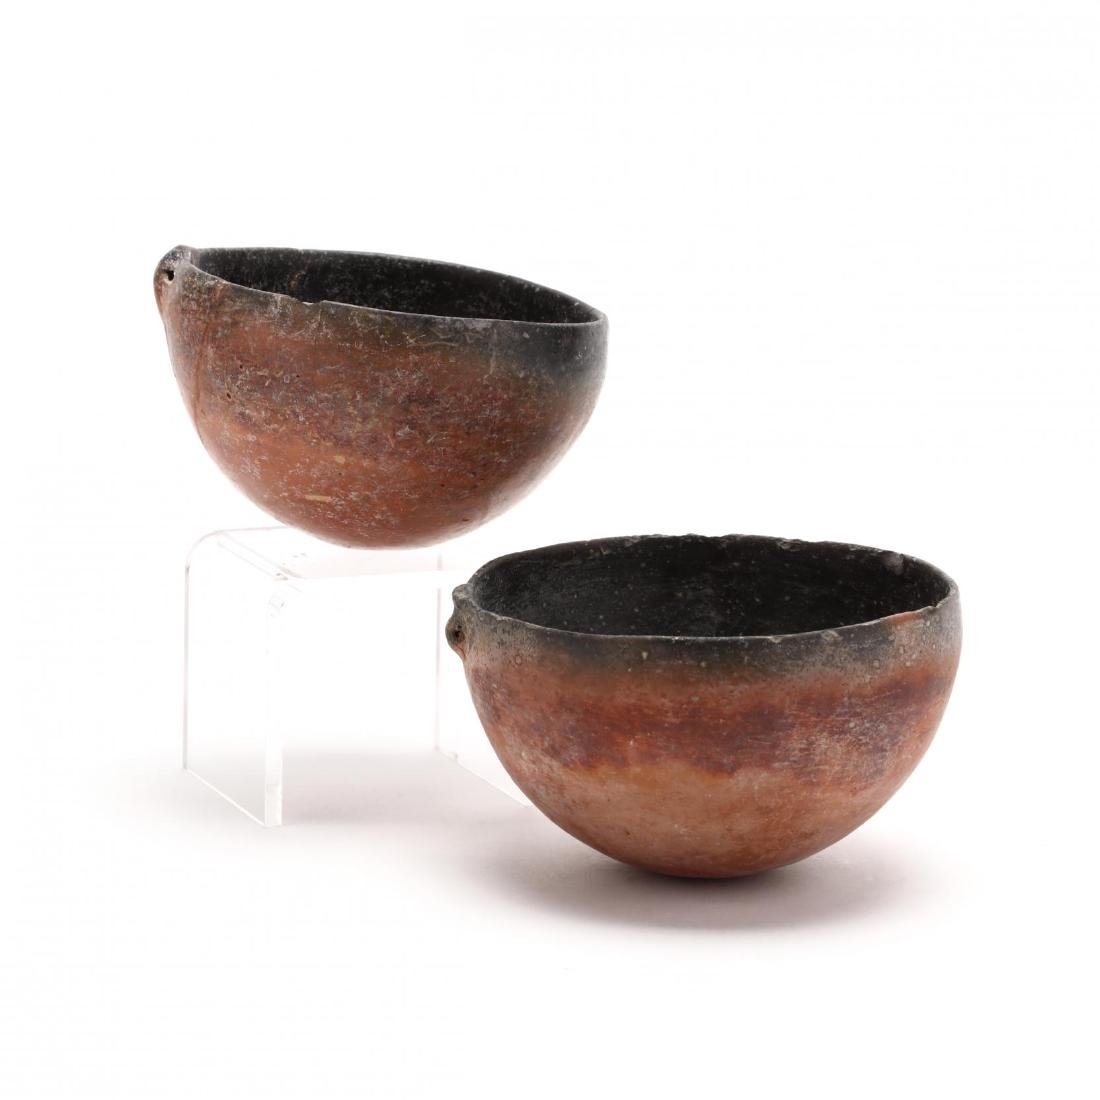 Two Cypriot Bronze Age Polished Red Ware Bowls